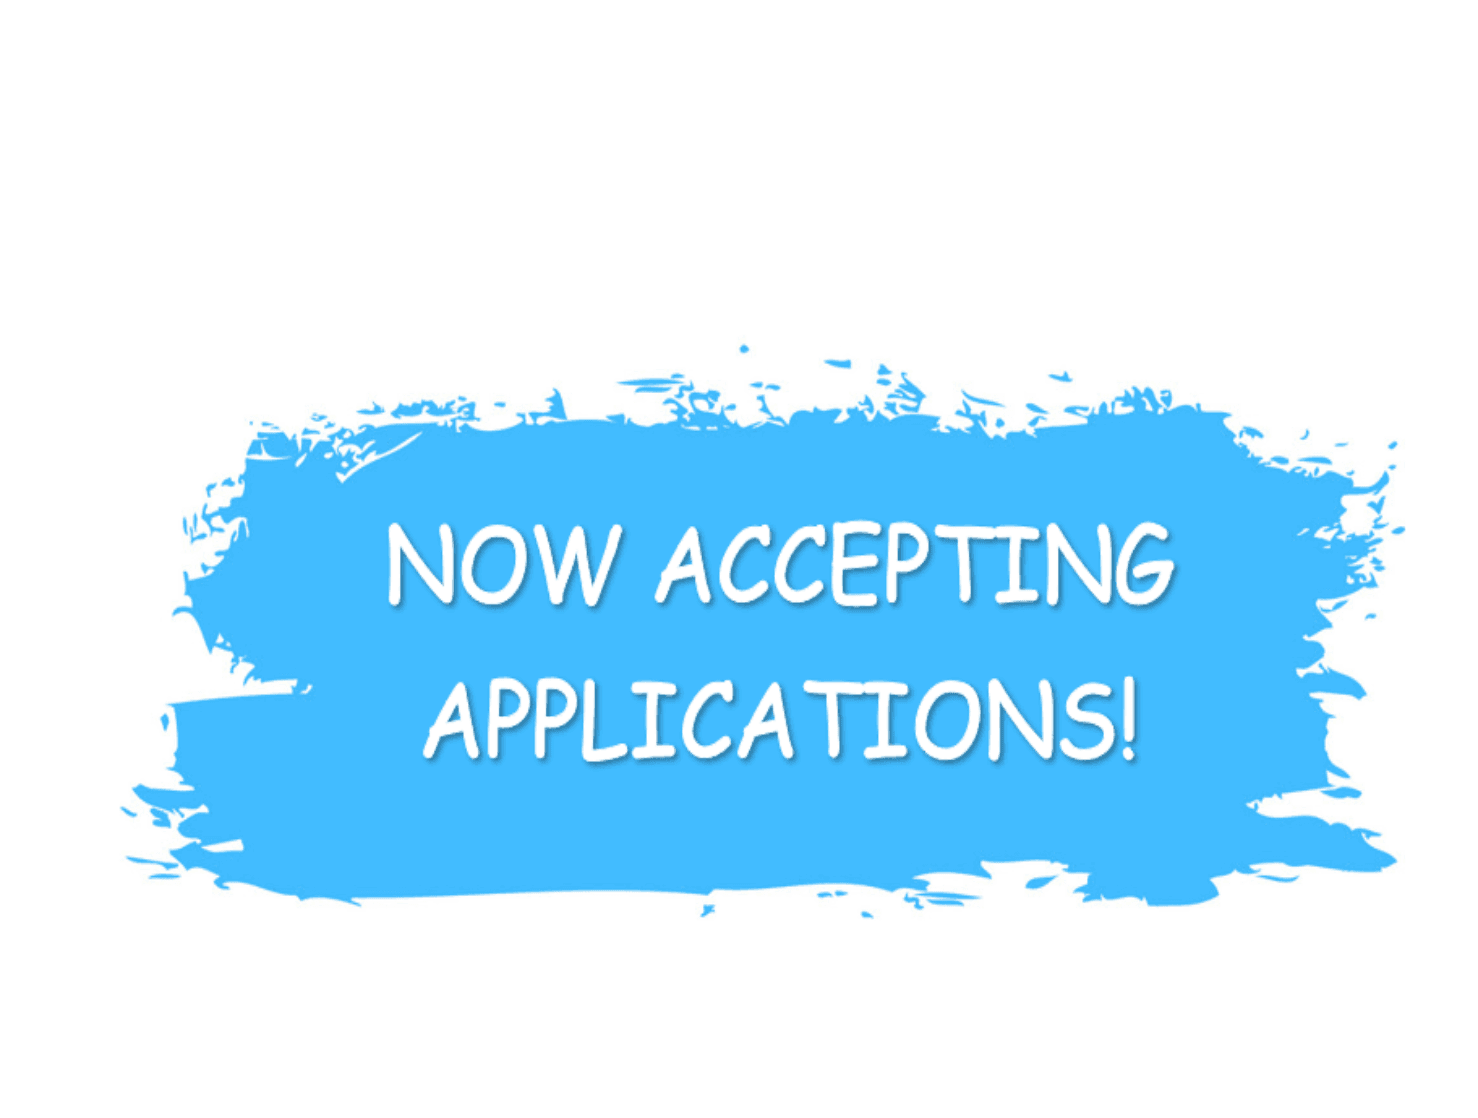 Accepting Applications Image (PNG)